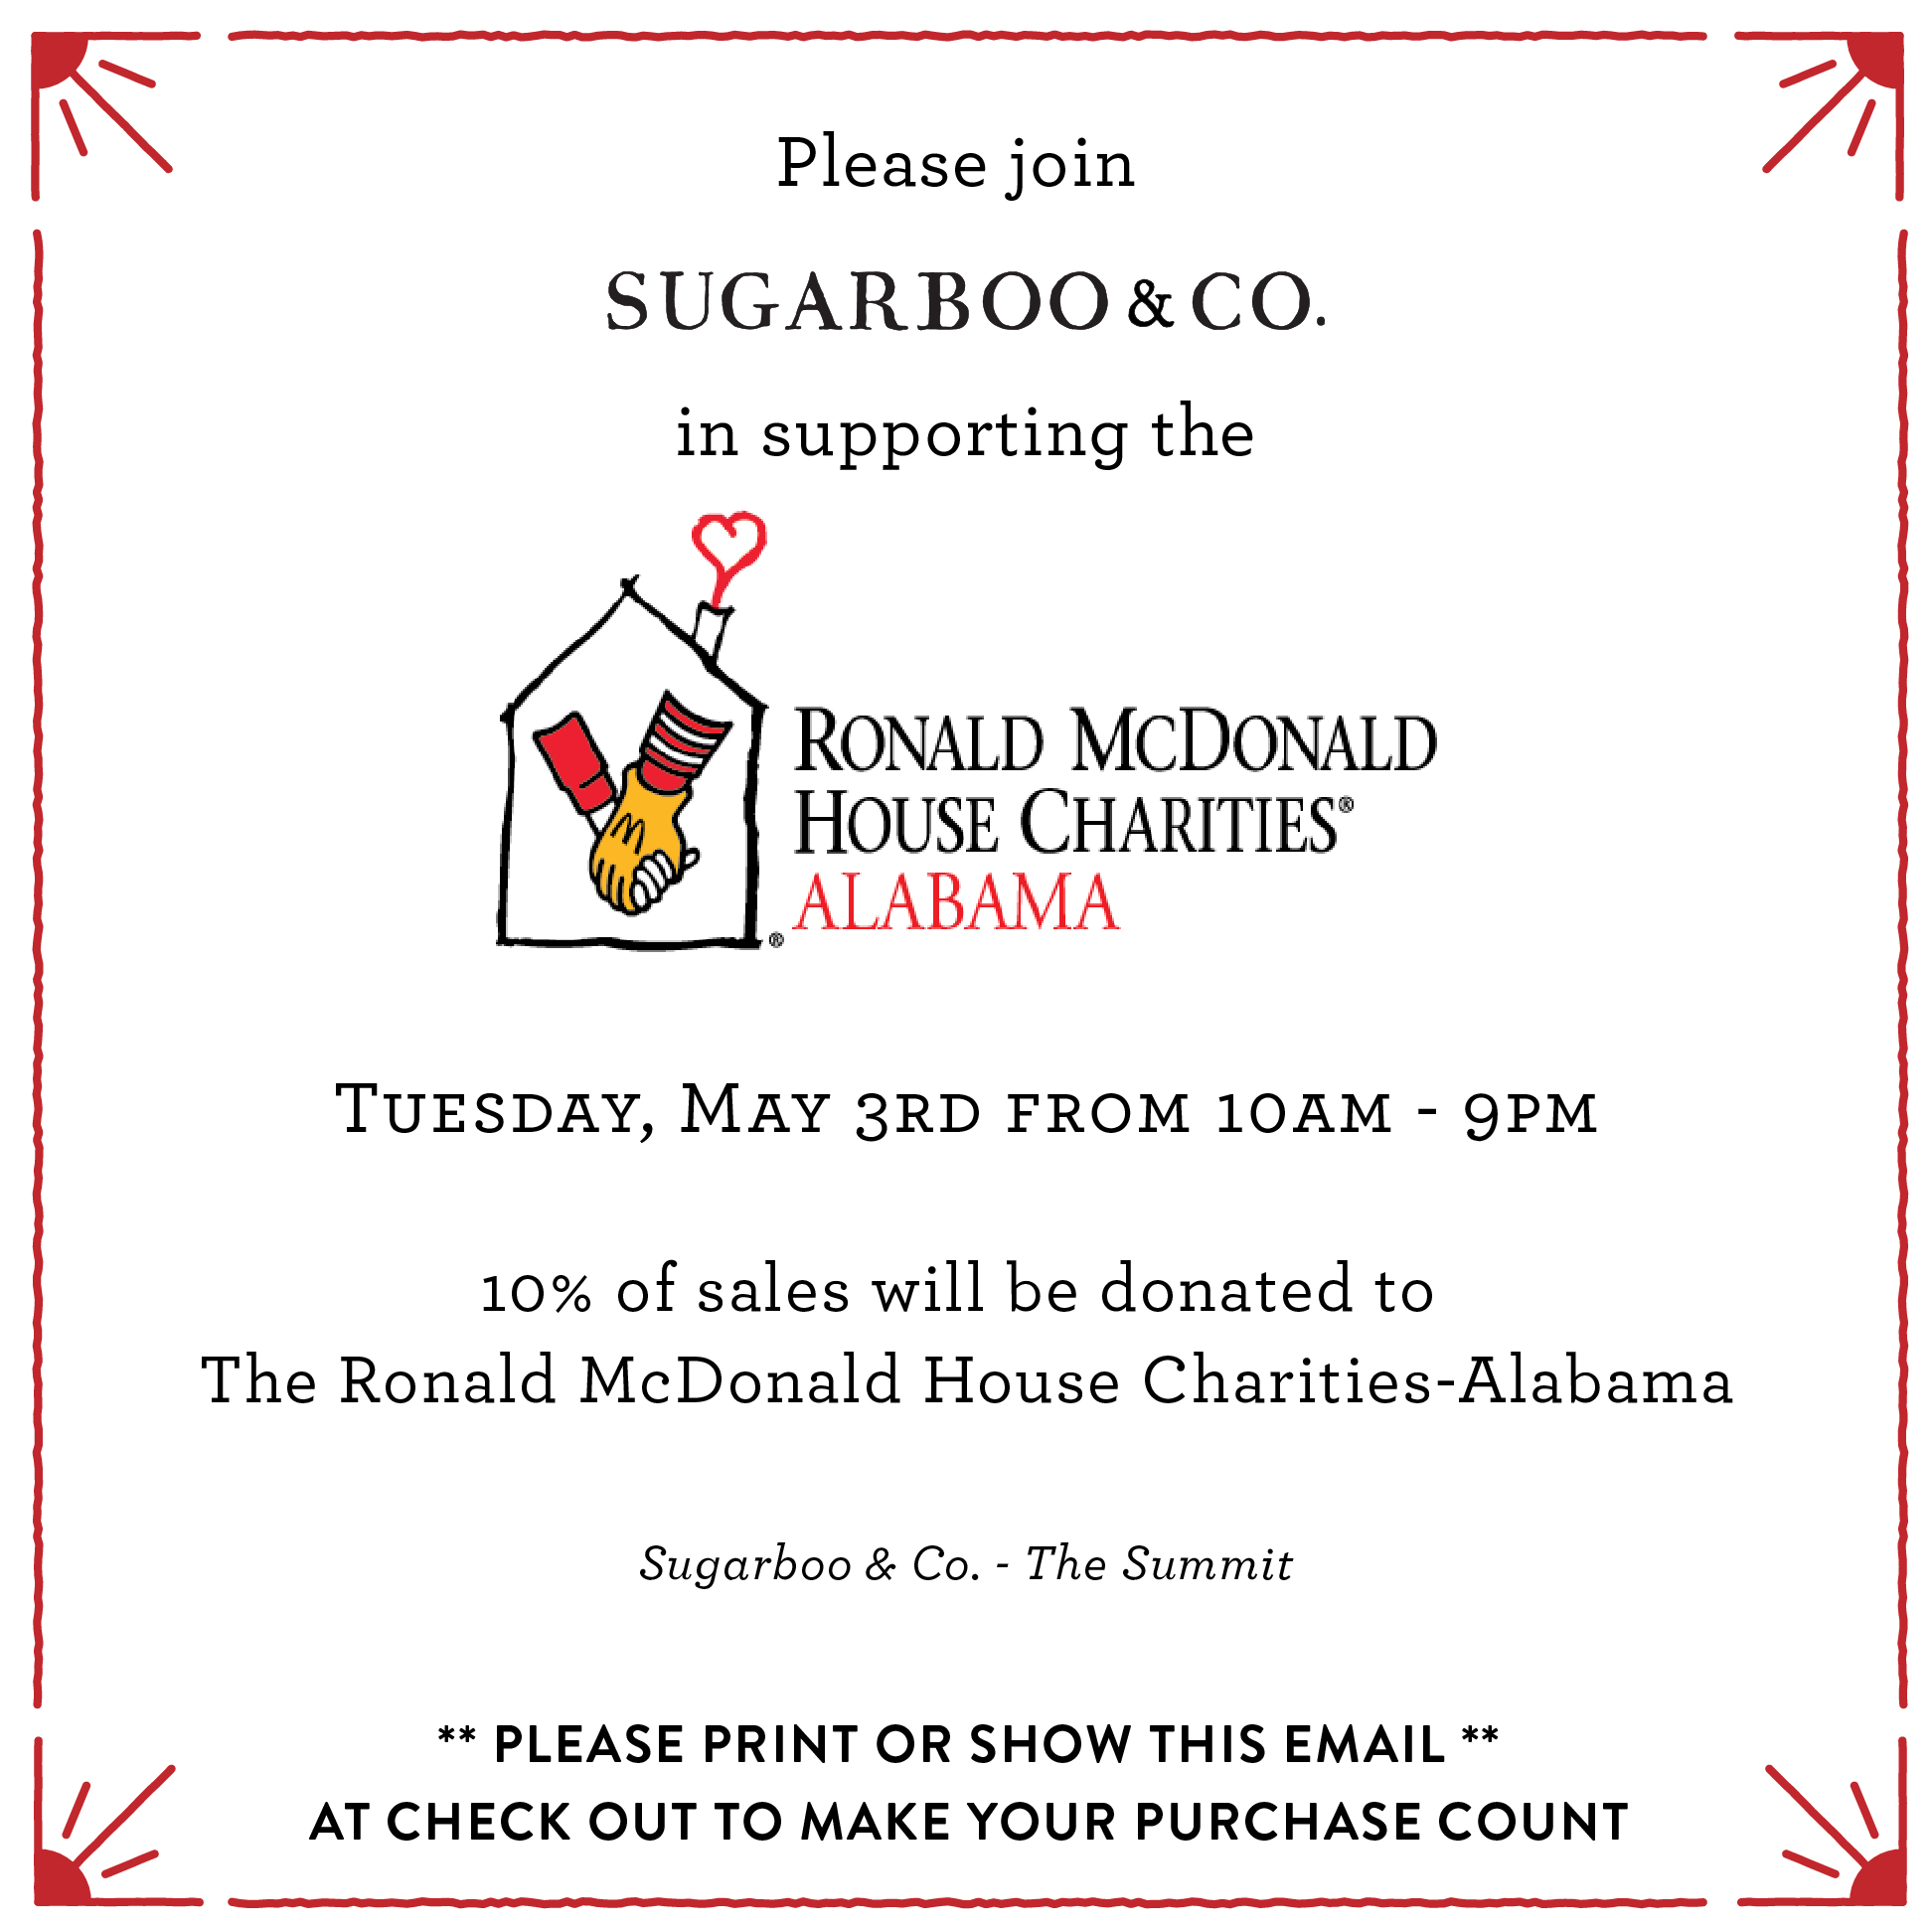 Ronald McDonald House Charities of Alabama